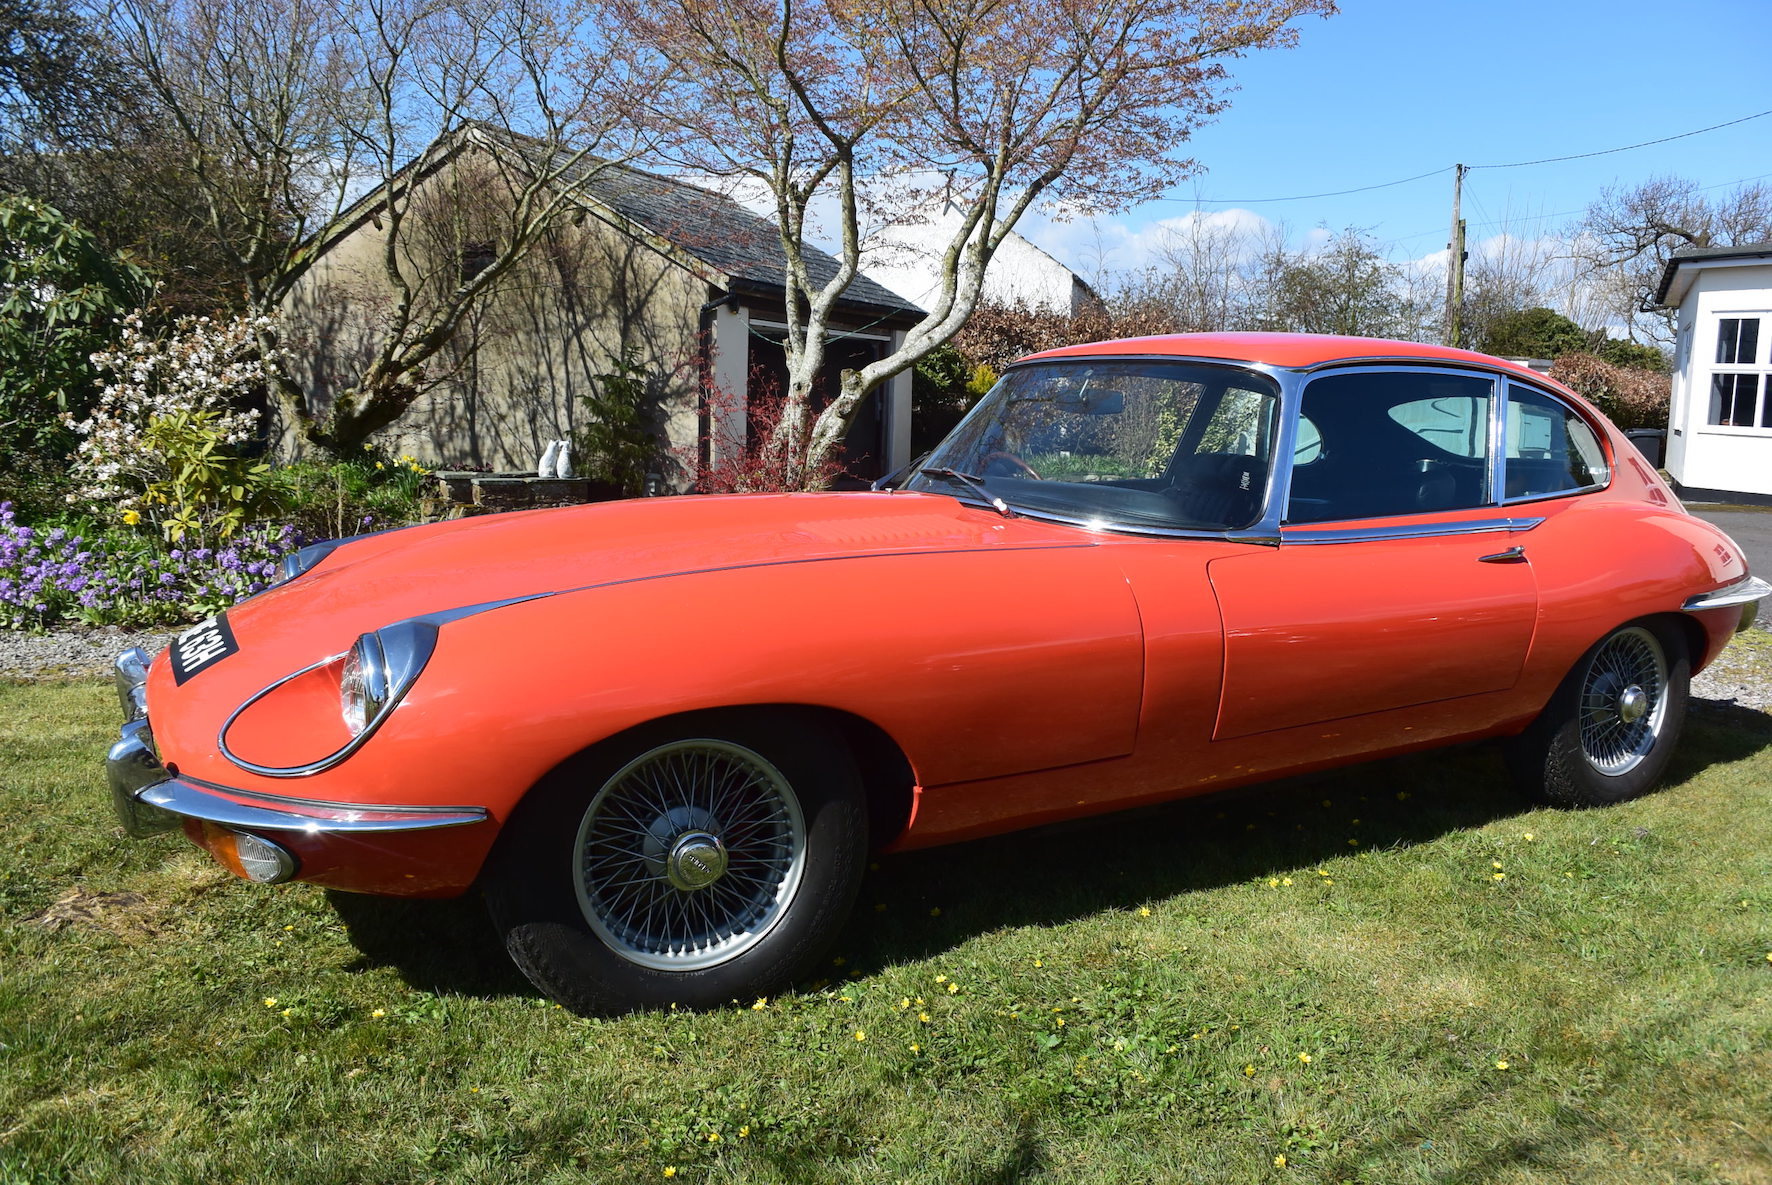 Rare Tangerine Jaguar E-Type for sale at IWM Duxford on May 26th